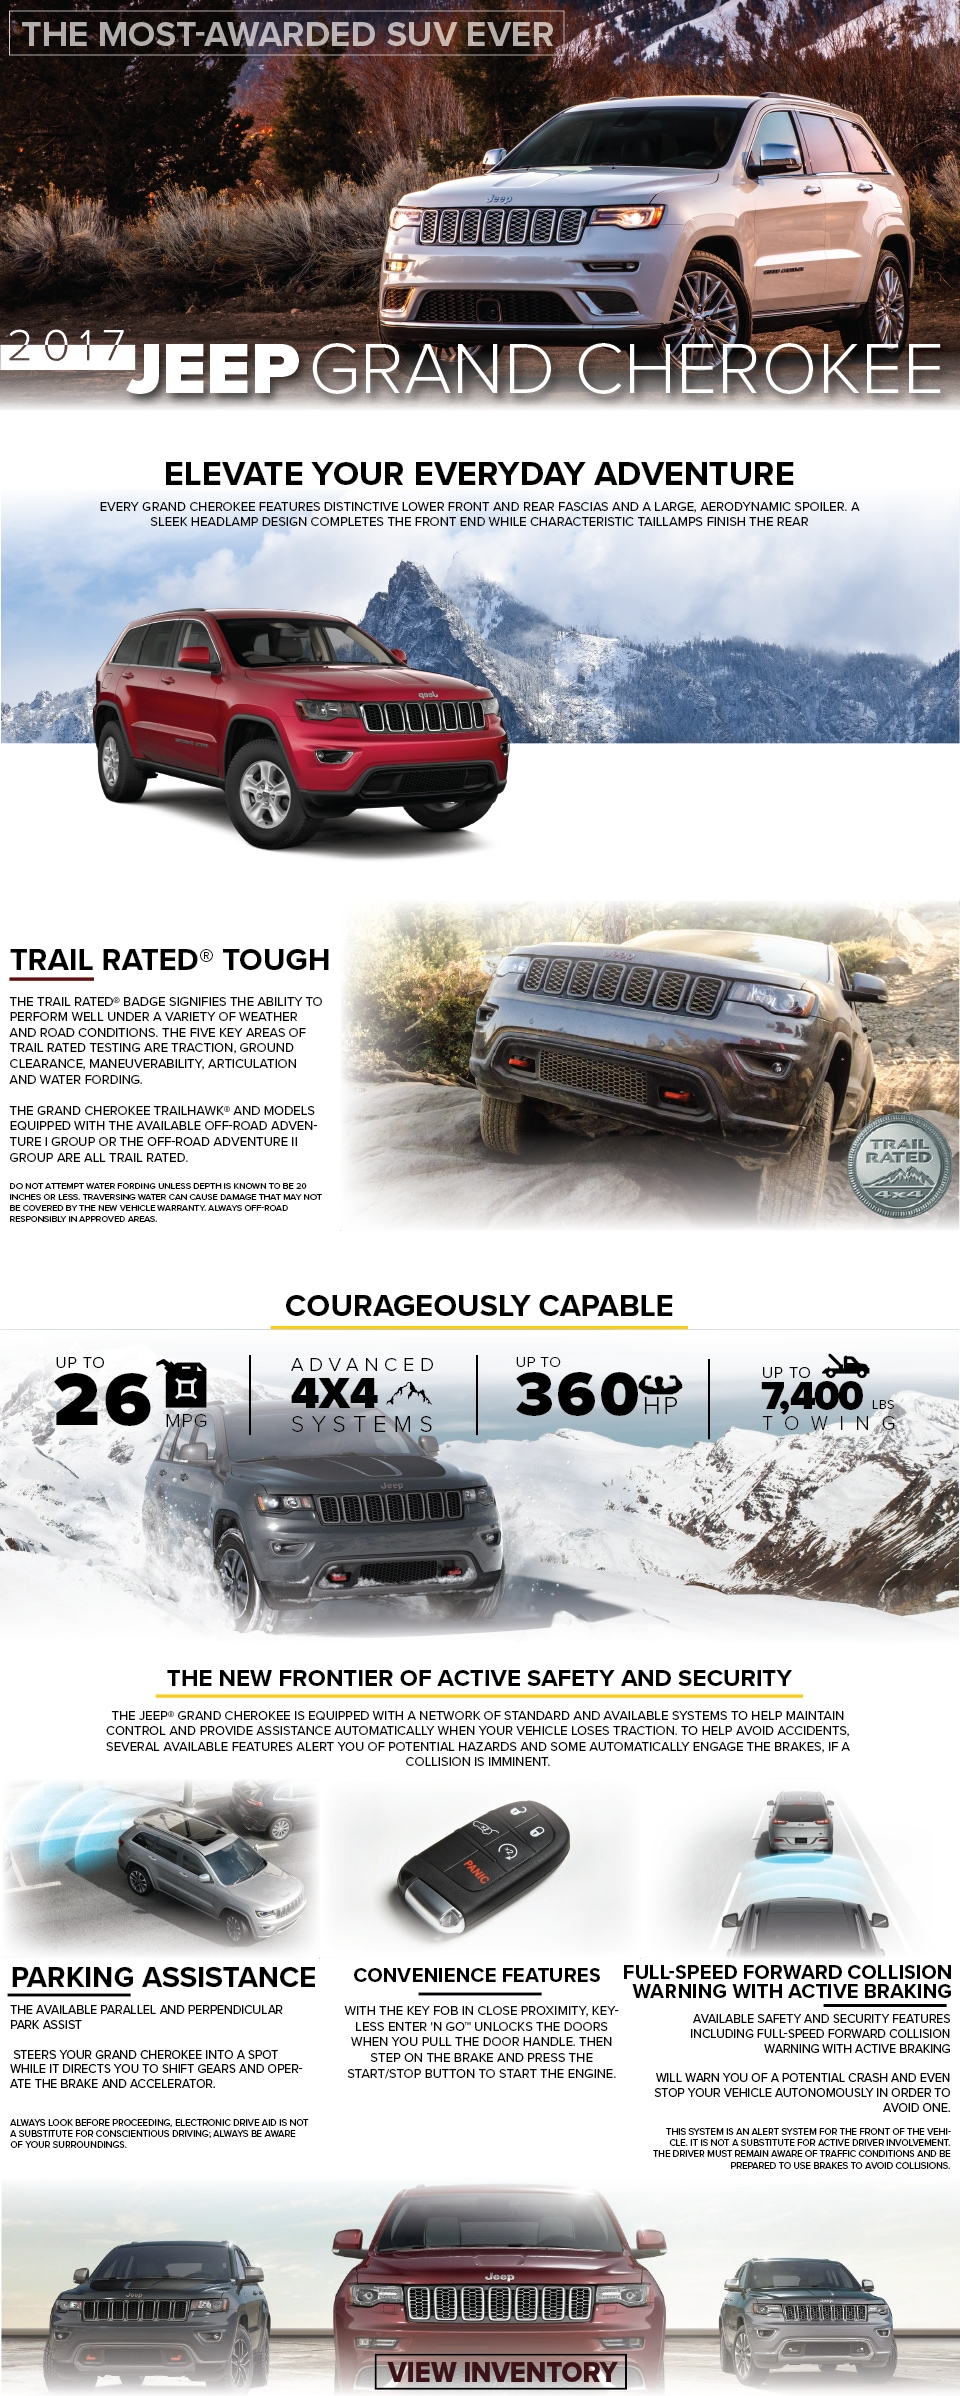 incentives cherokee cherry hill of full new ram dealership nj dealers route renegade current deals in jeep chrysler grand dodge down lease size